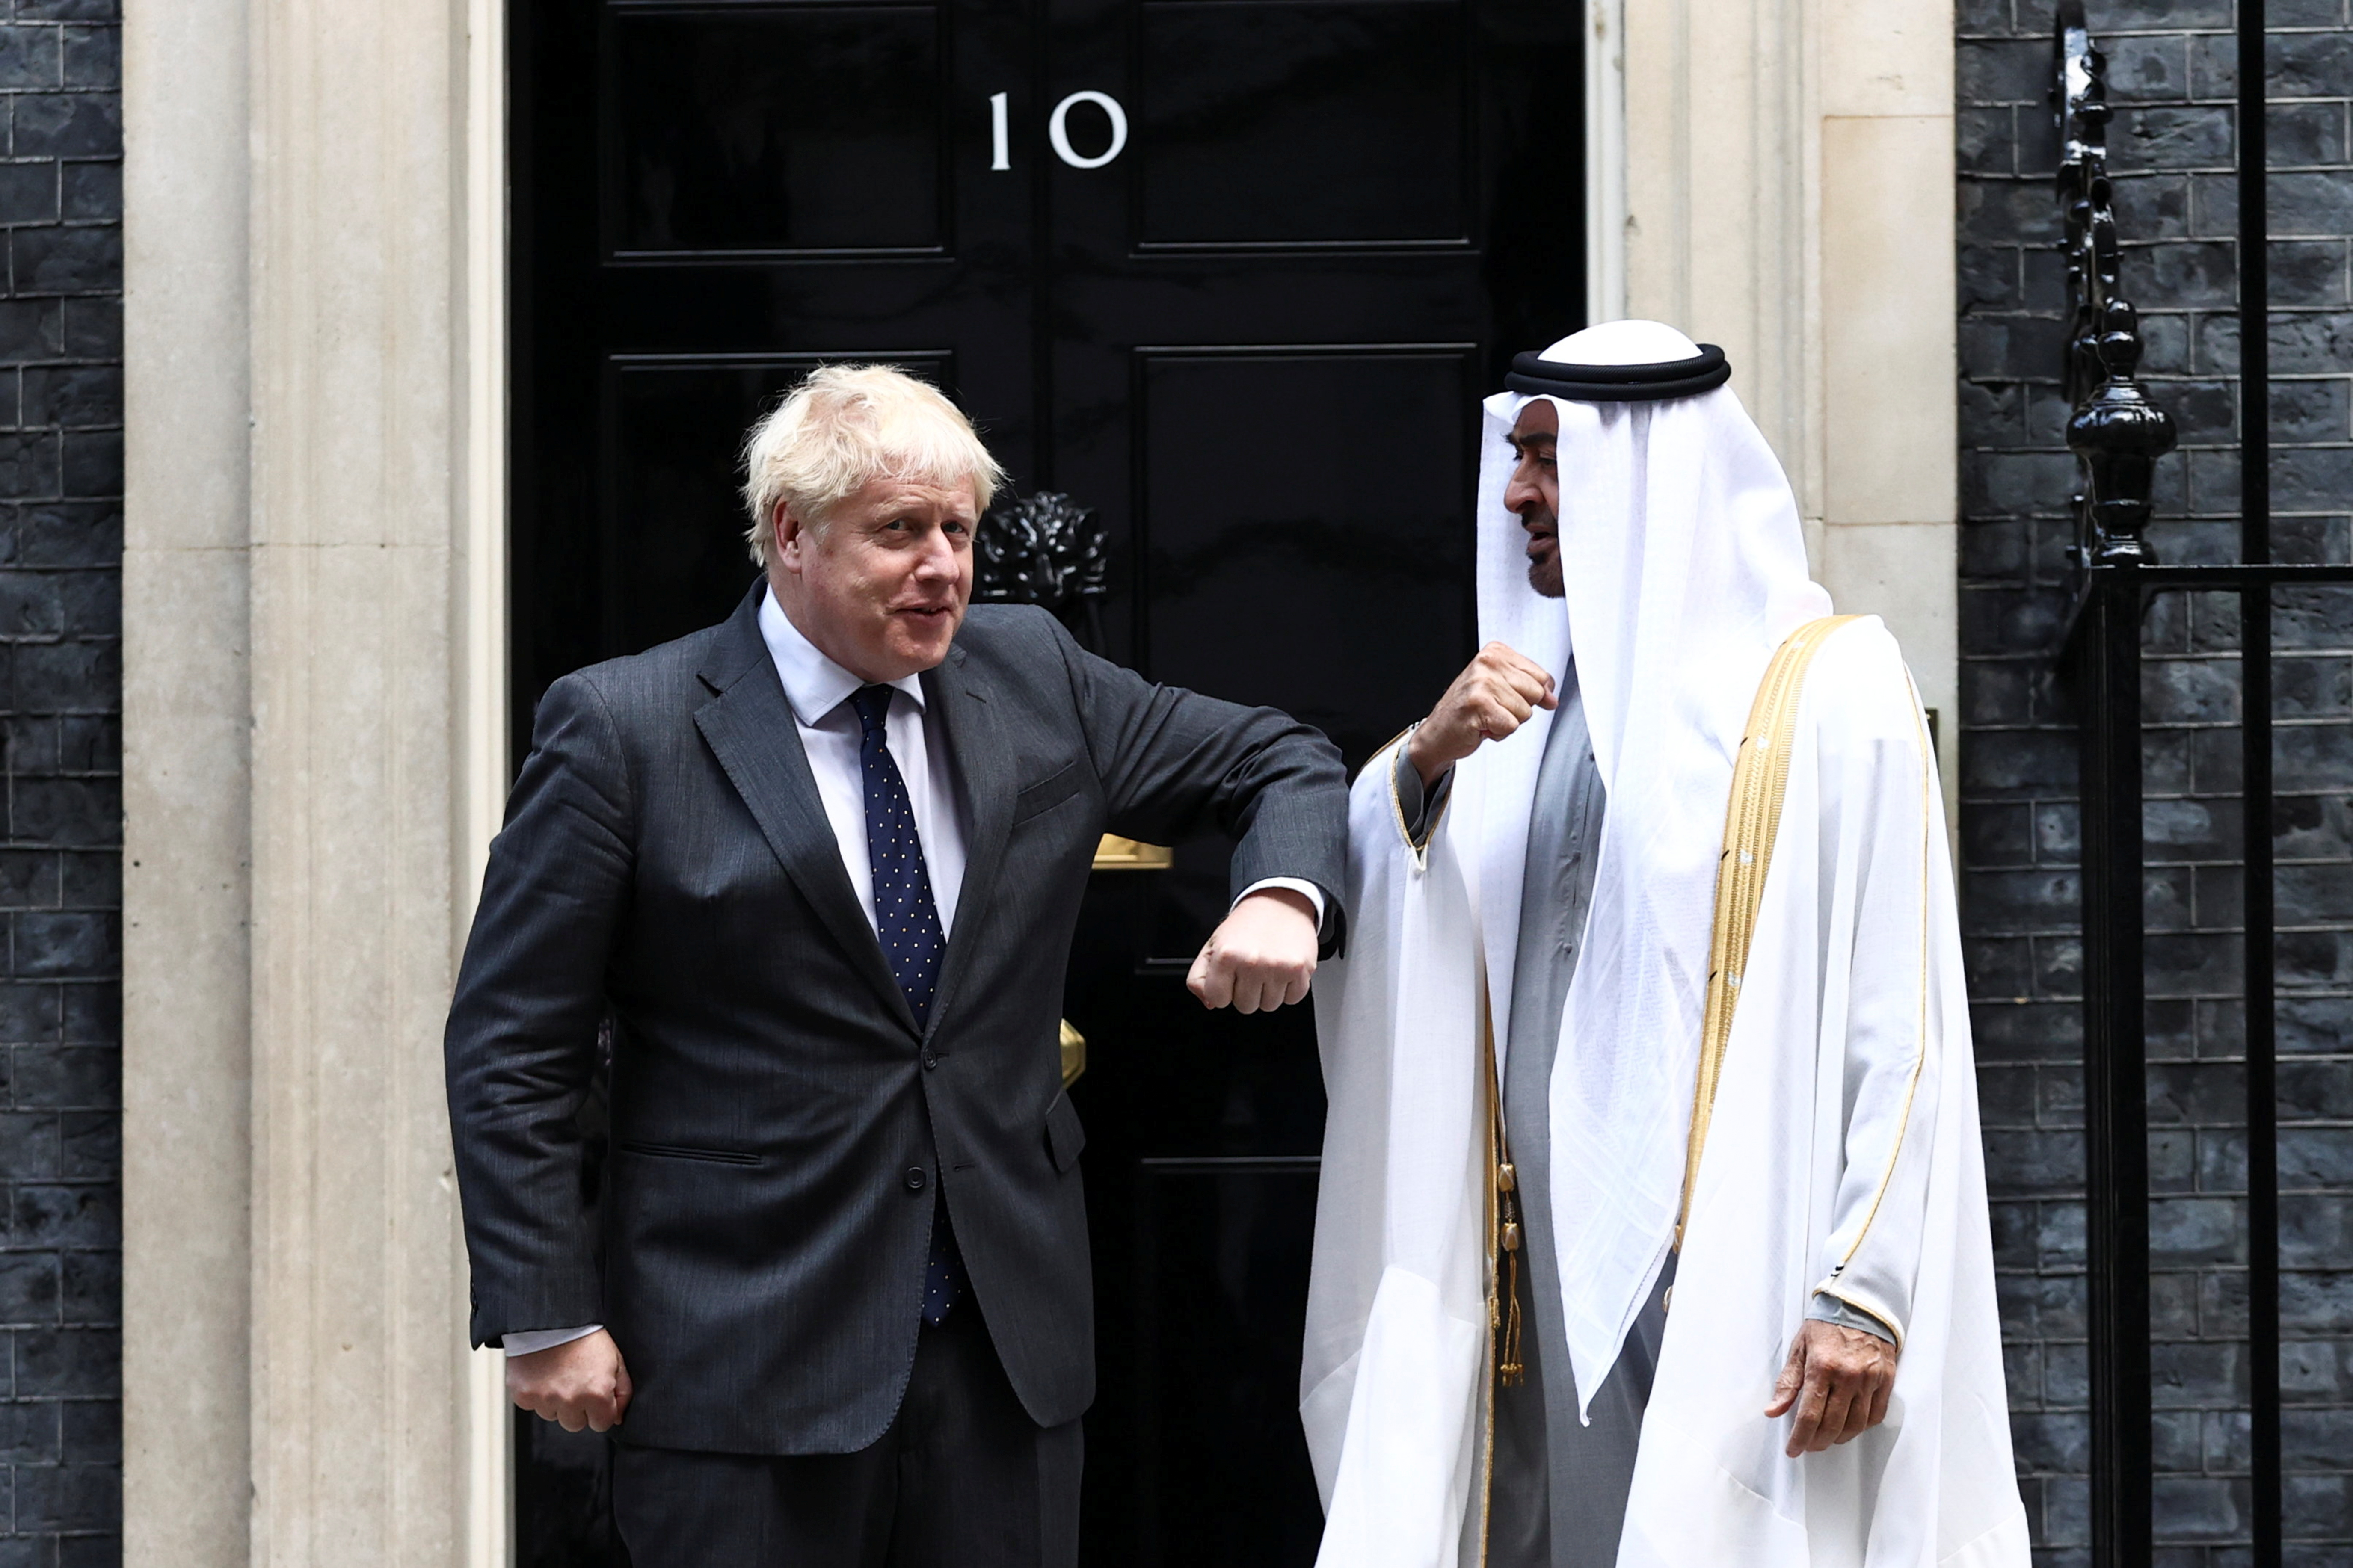 Britain's Prime Minister Boris Johnson welcomes Abu Dhabi's Crown Prince Sheikh Mohammed bin Zayed al-Nahyan as he arrives in Downing Street, London, Britain, September 16, 2021. REUTERS/Hannah McKay